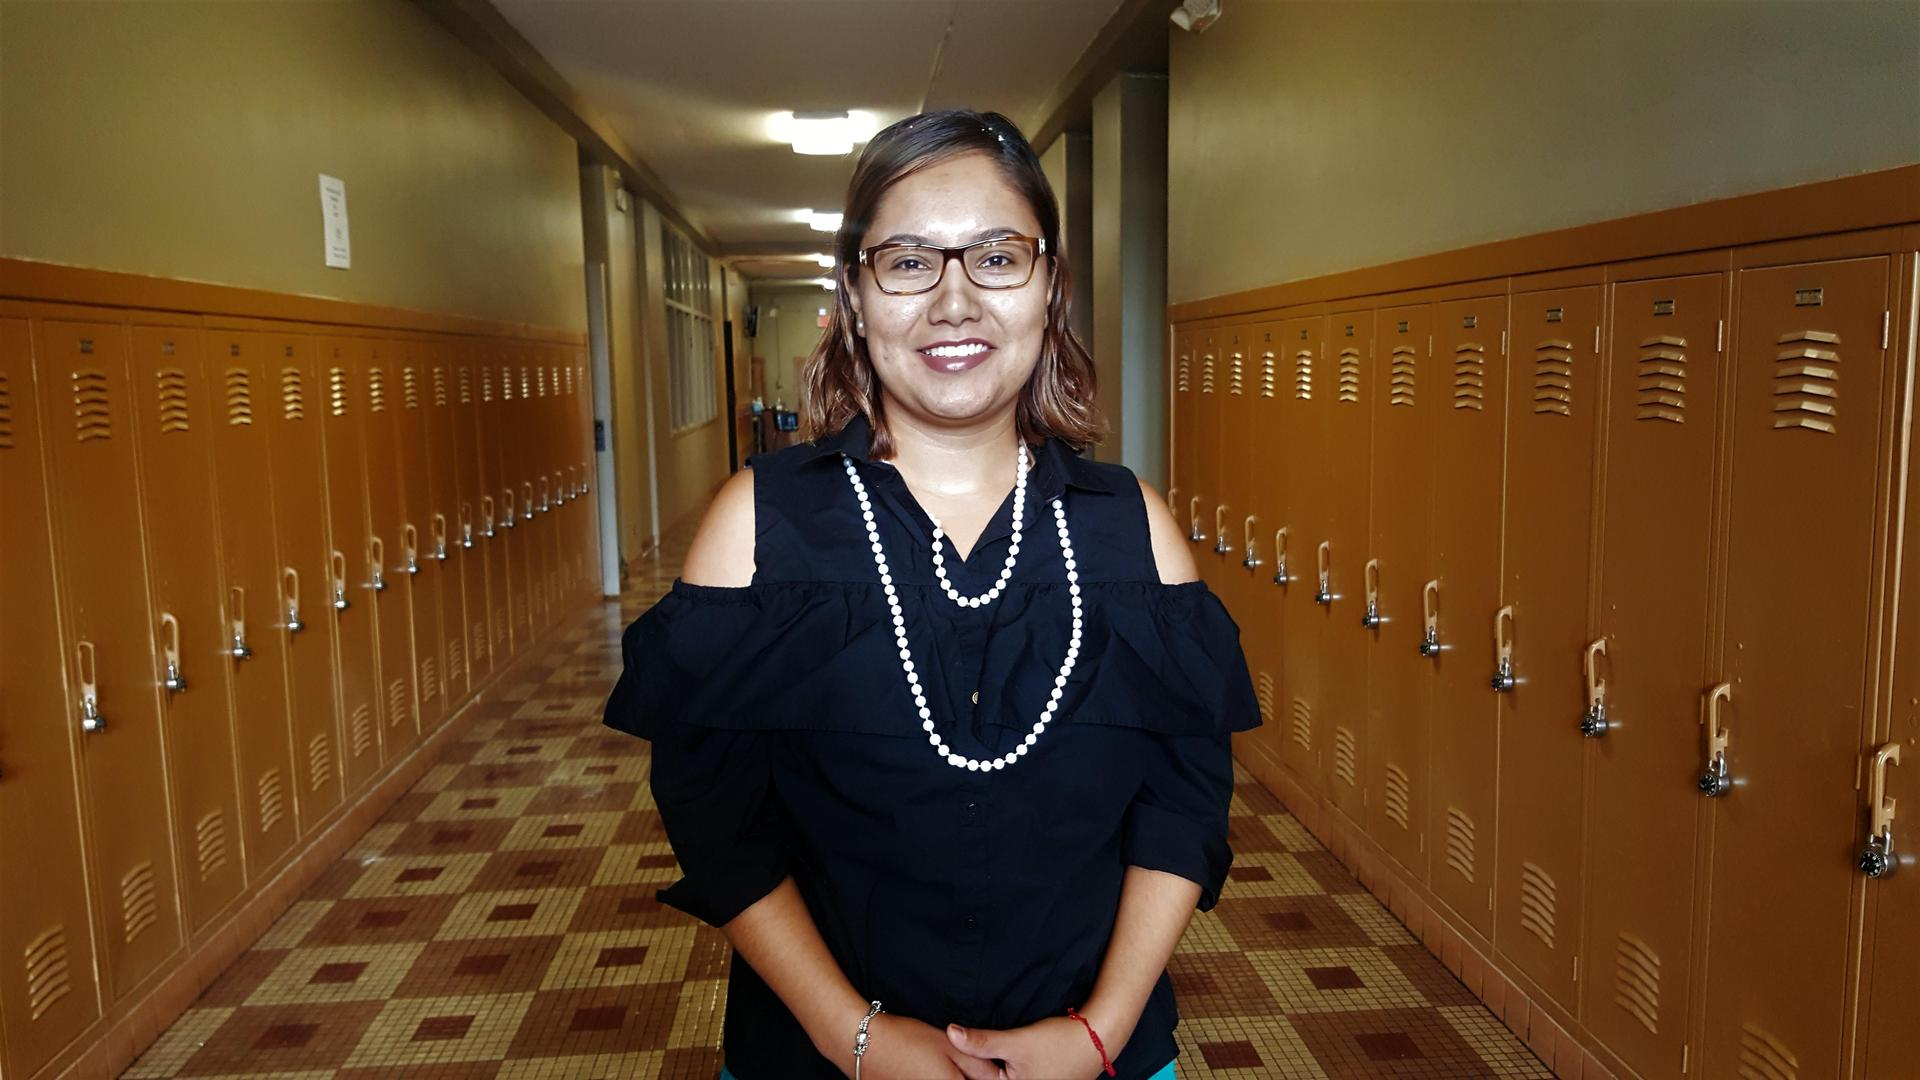 Anna Guzman, Assistant to the Principal